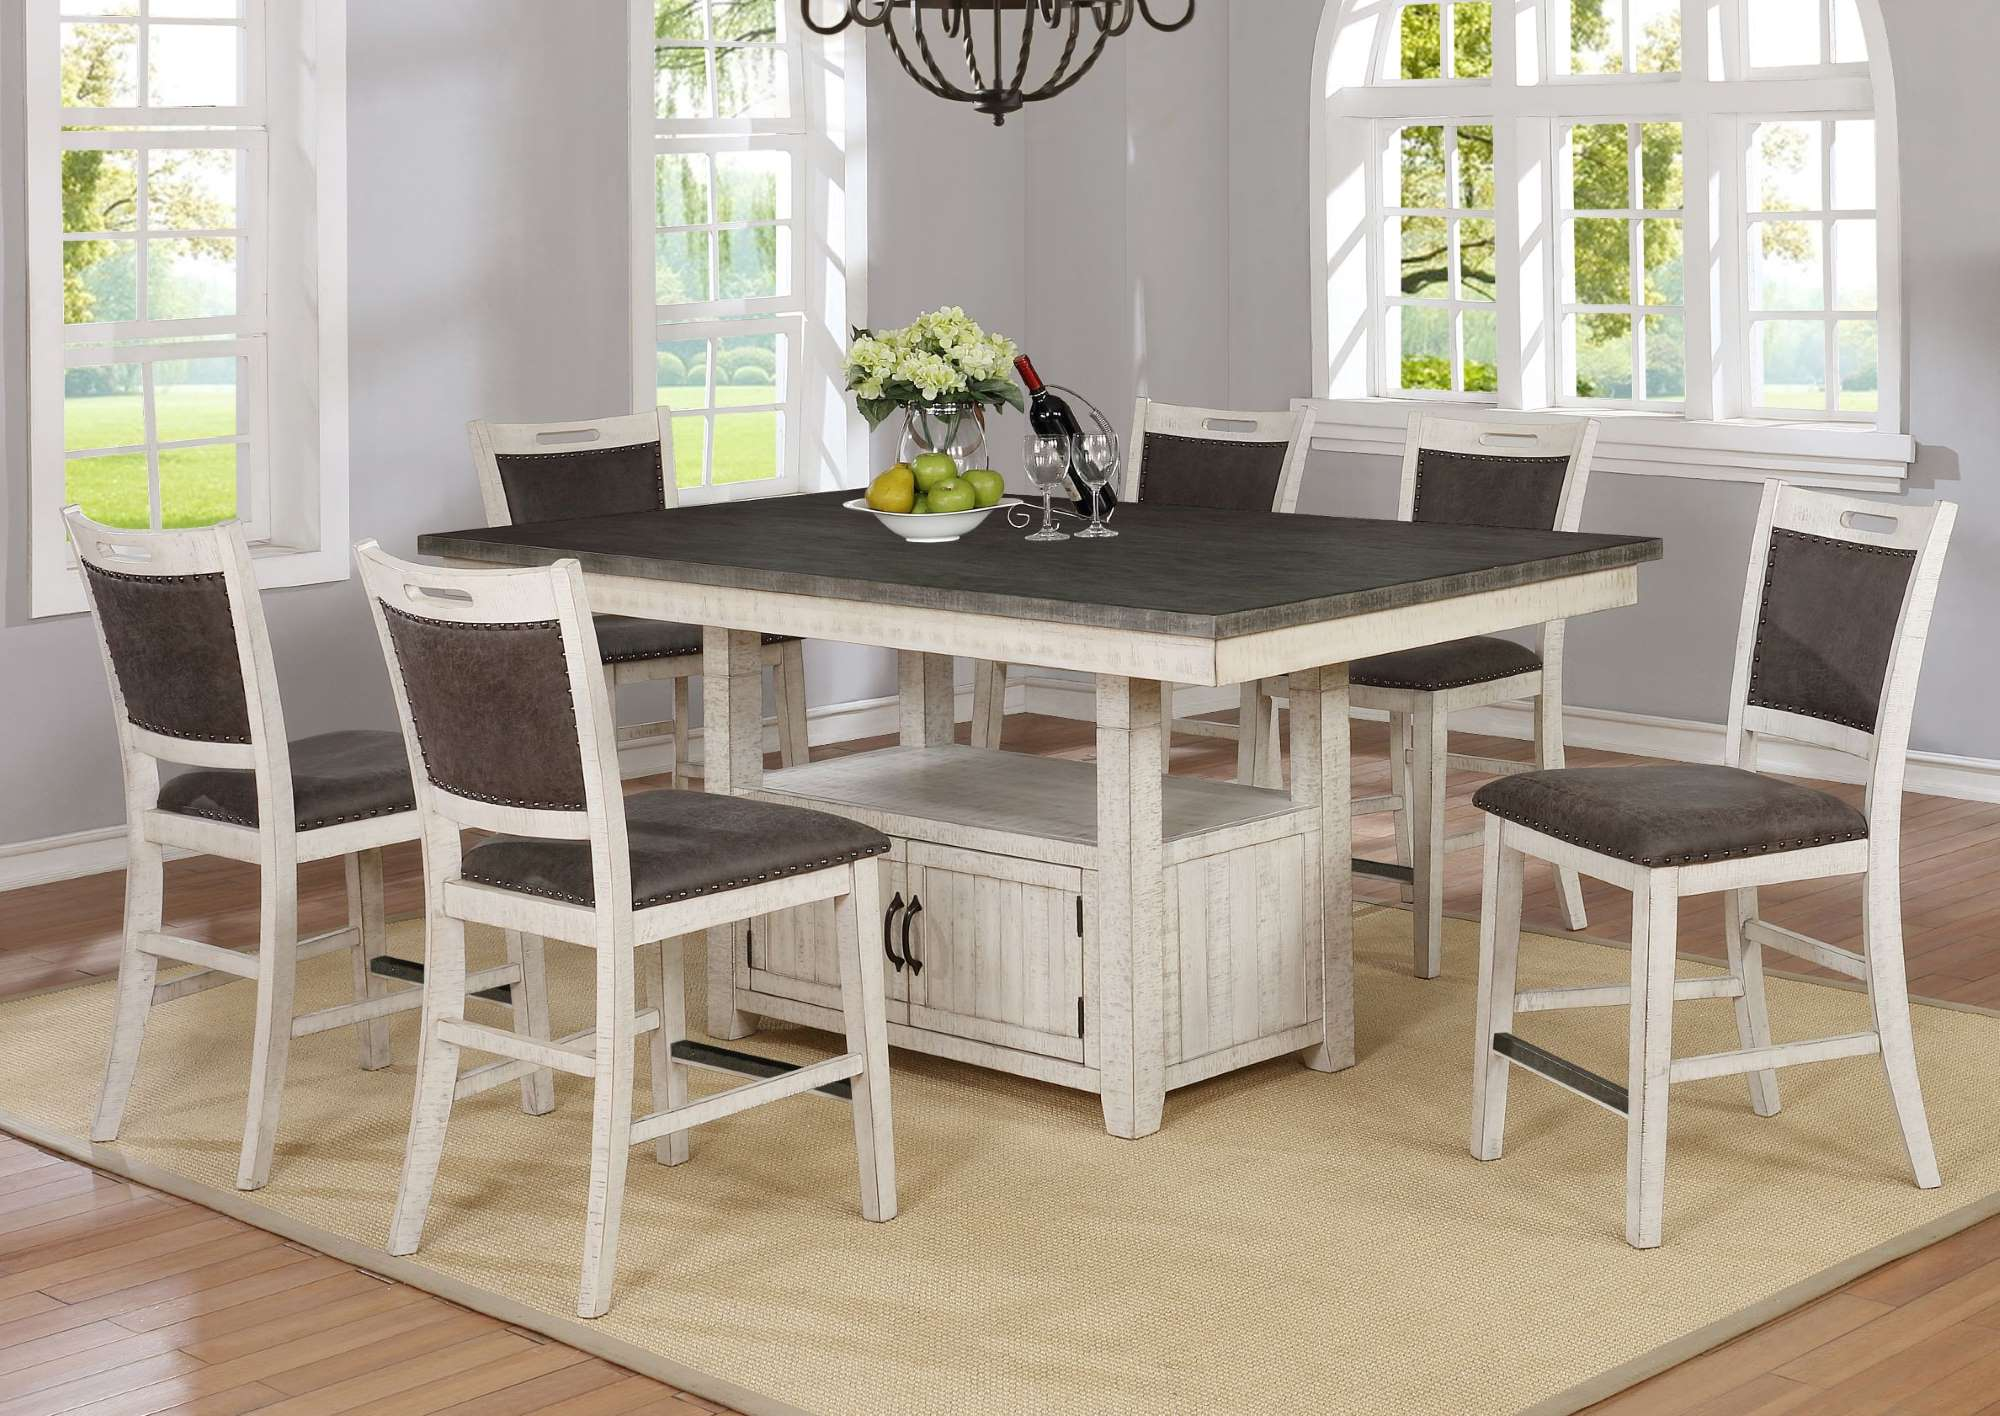 1852 Jonah Counter Height Table + 6 Stools $979.99